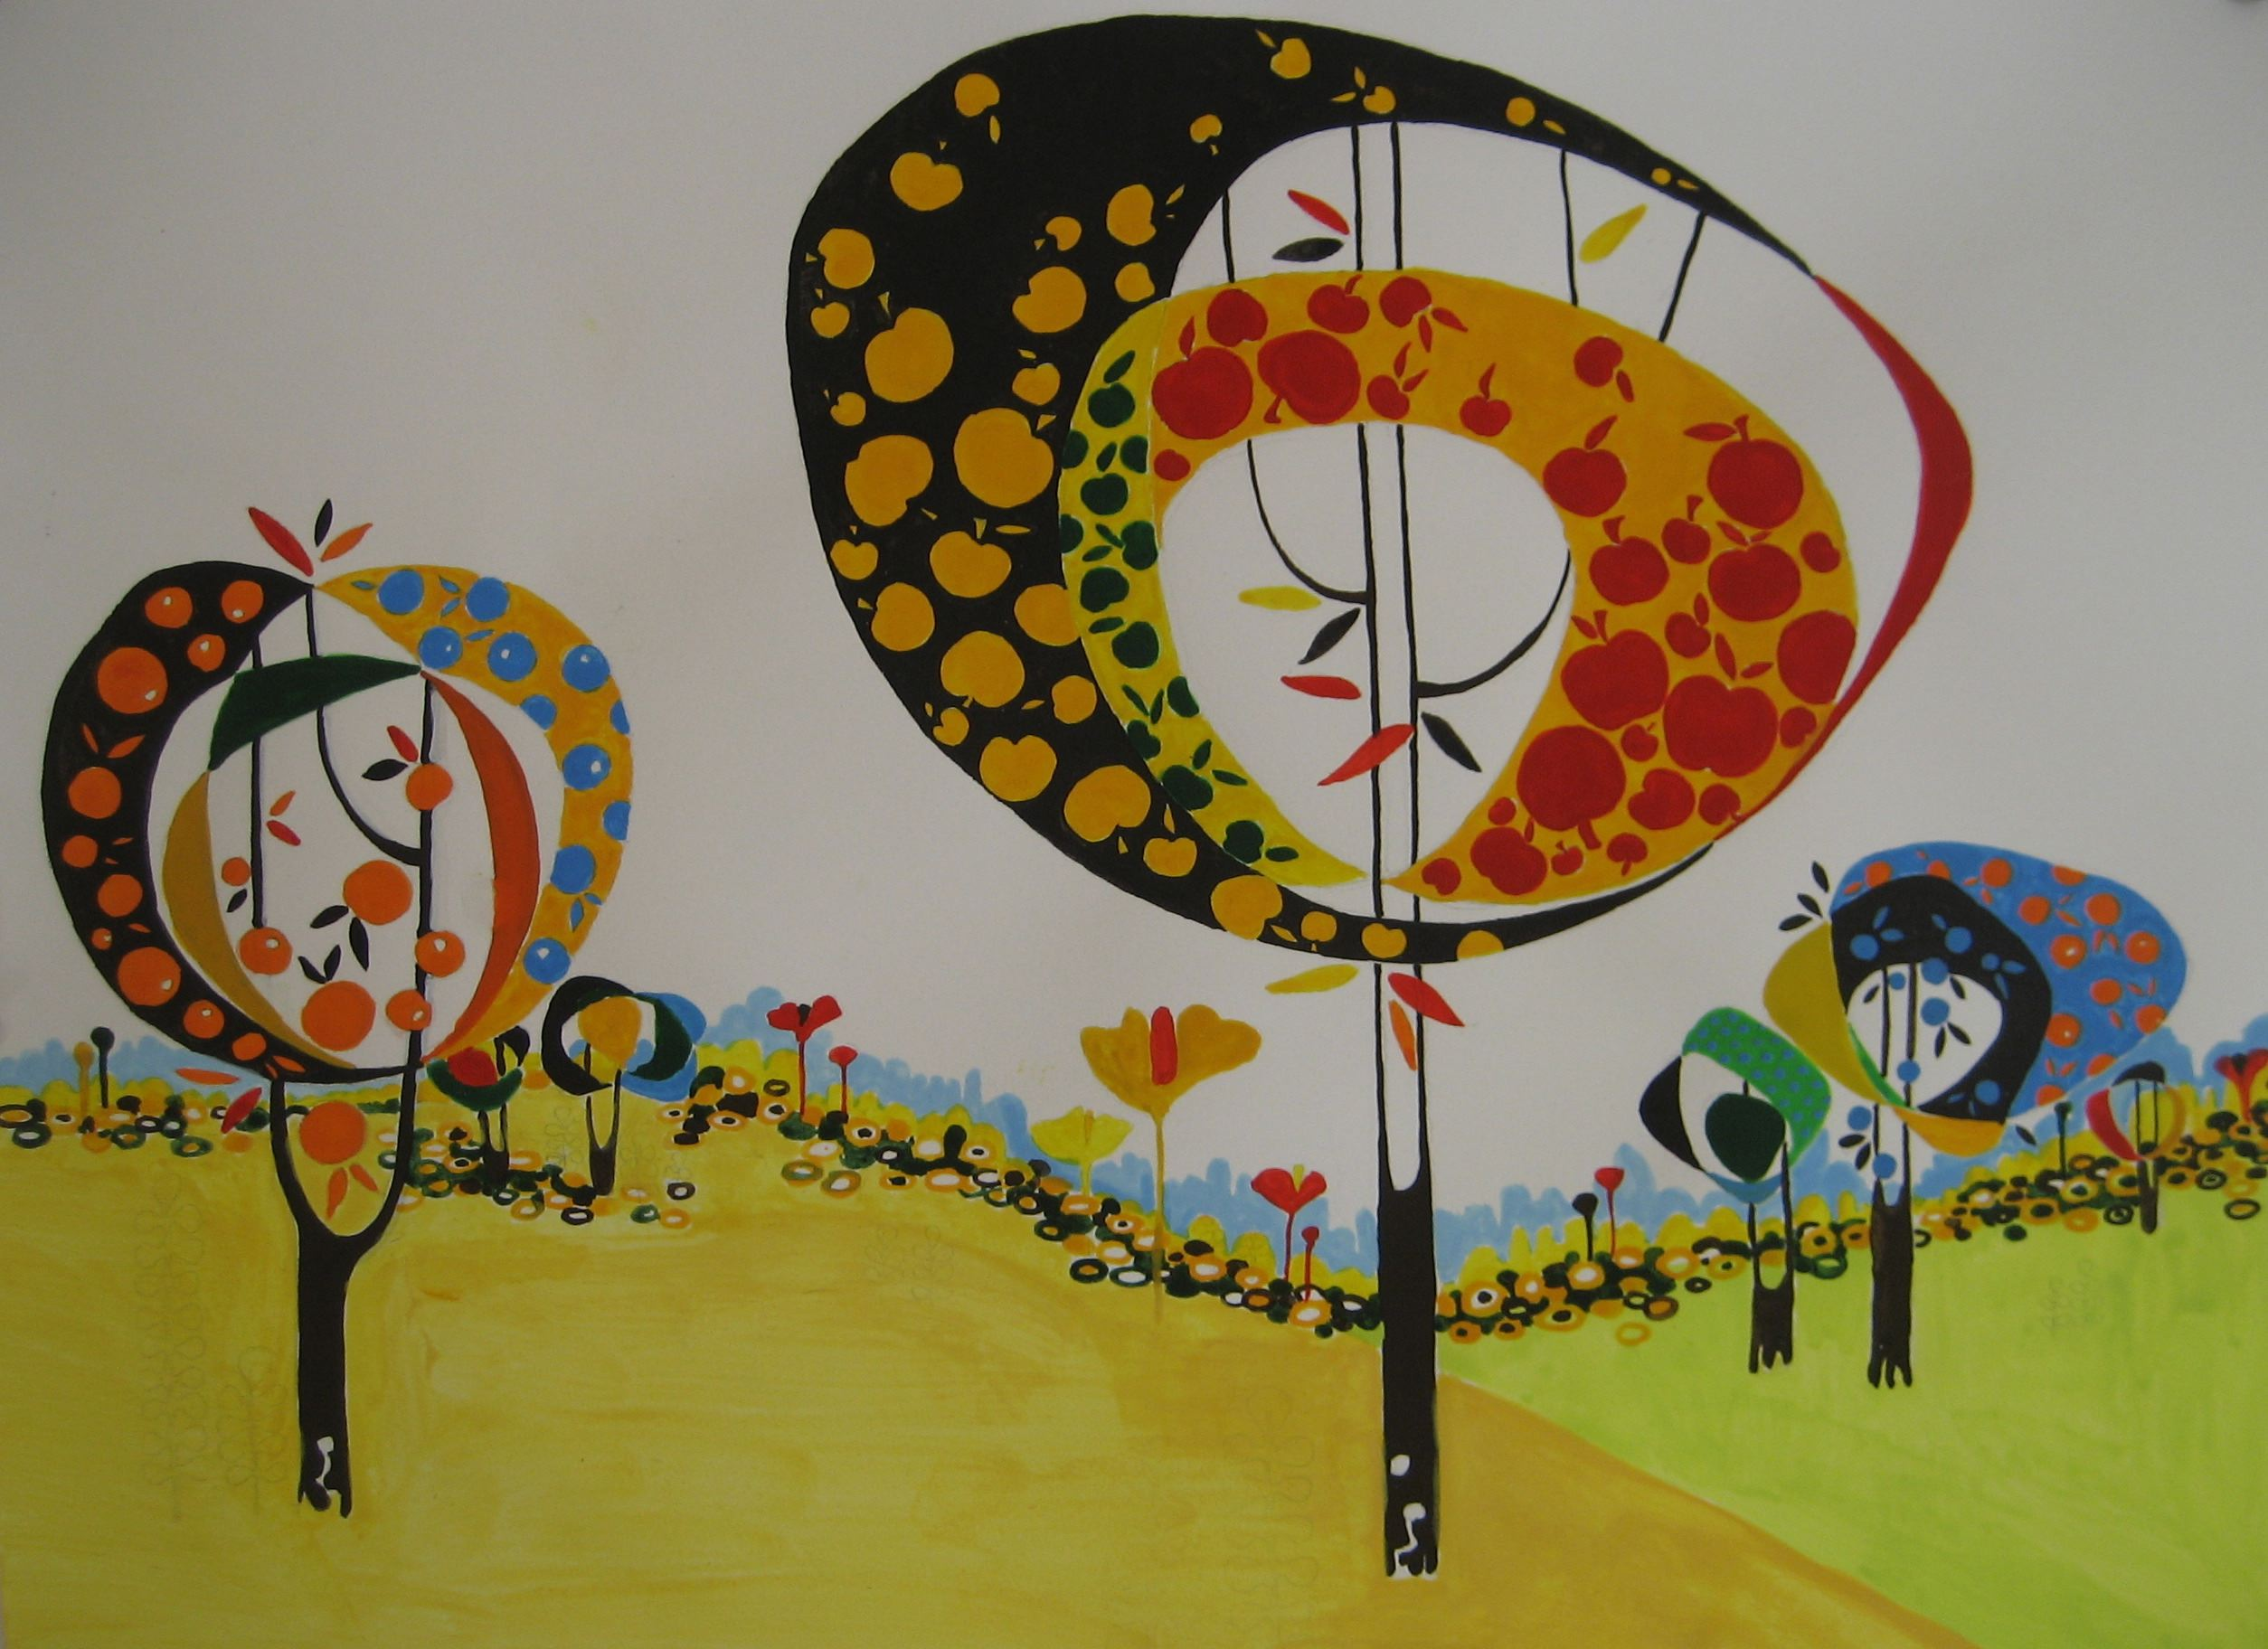 "Aditi Raychoudhury. Land of Plenty (In Orange). 2009. 17"" x 14"". Gouache on Paper."